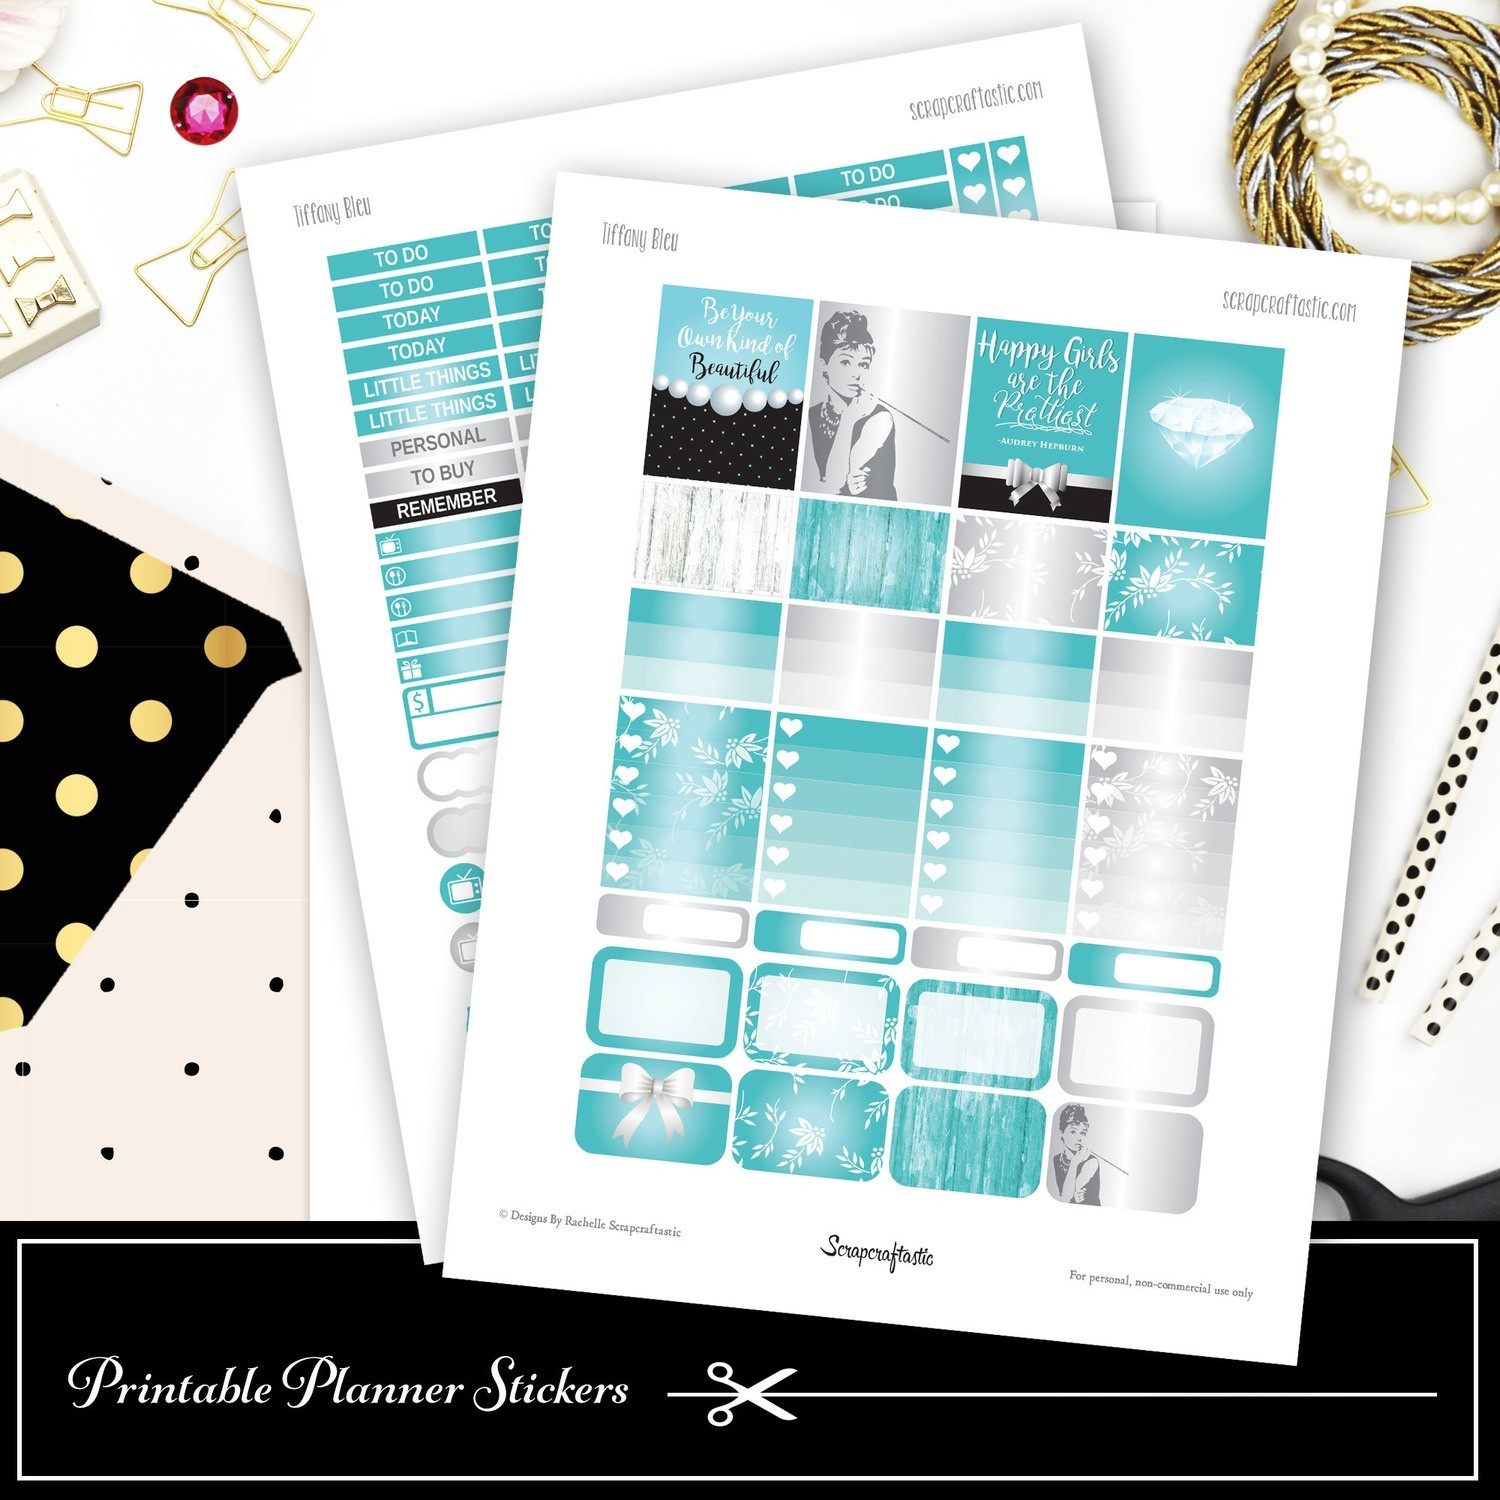 Tiffany Bleu Printable Planner Stickers